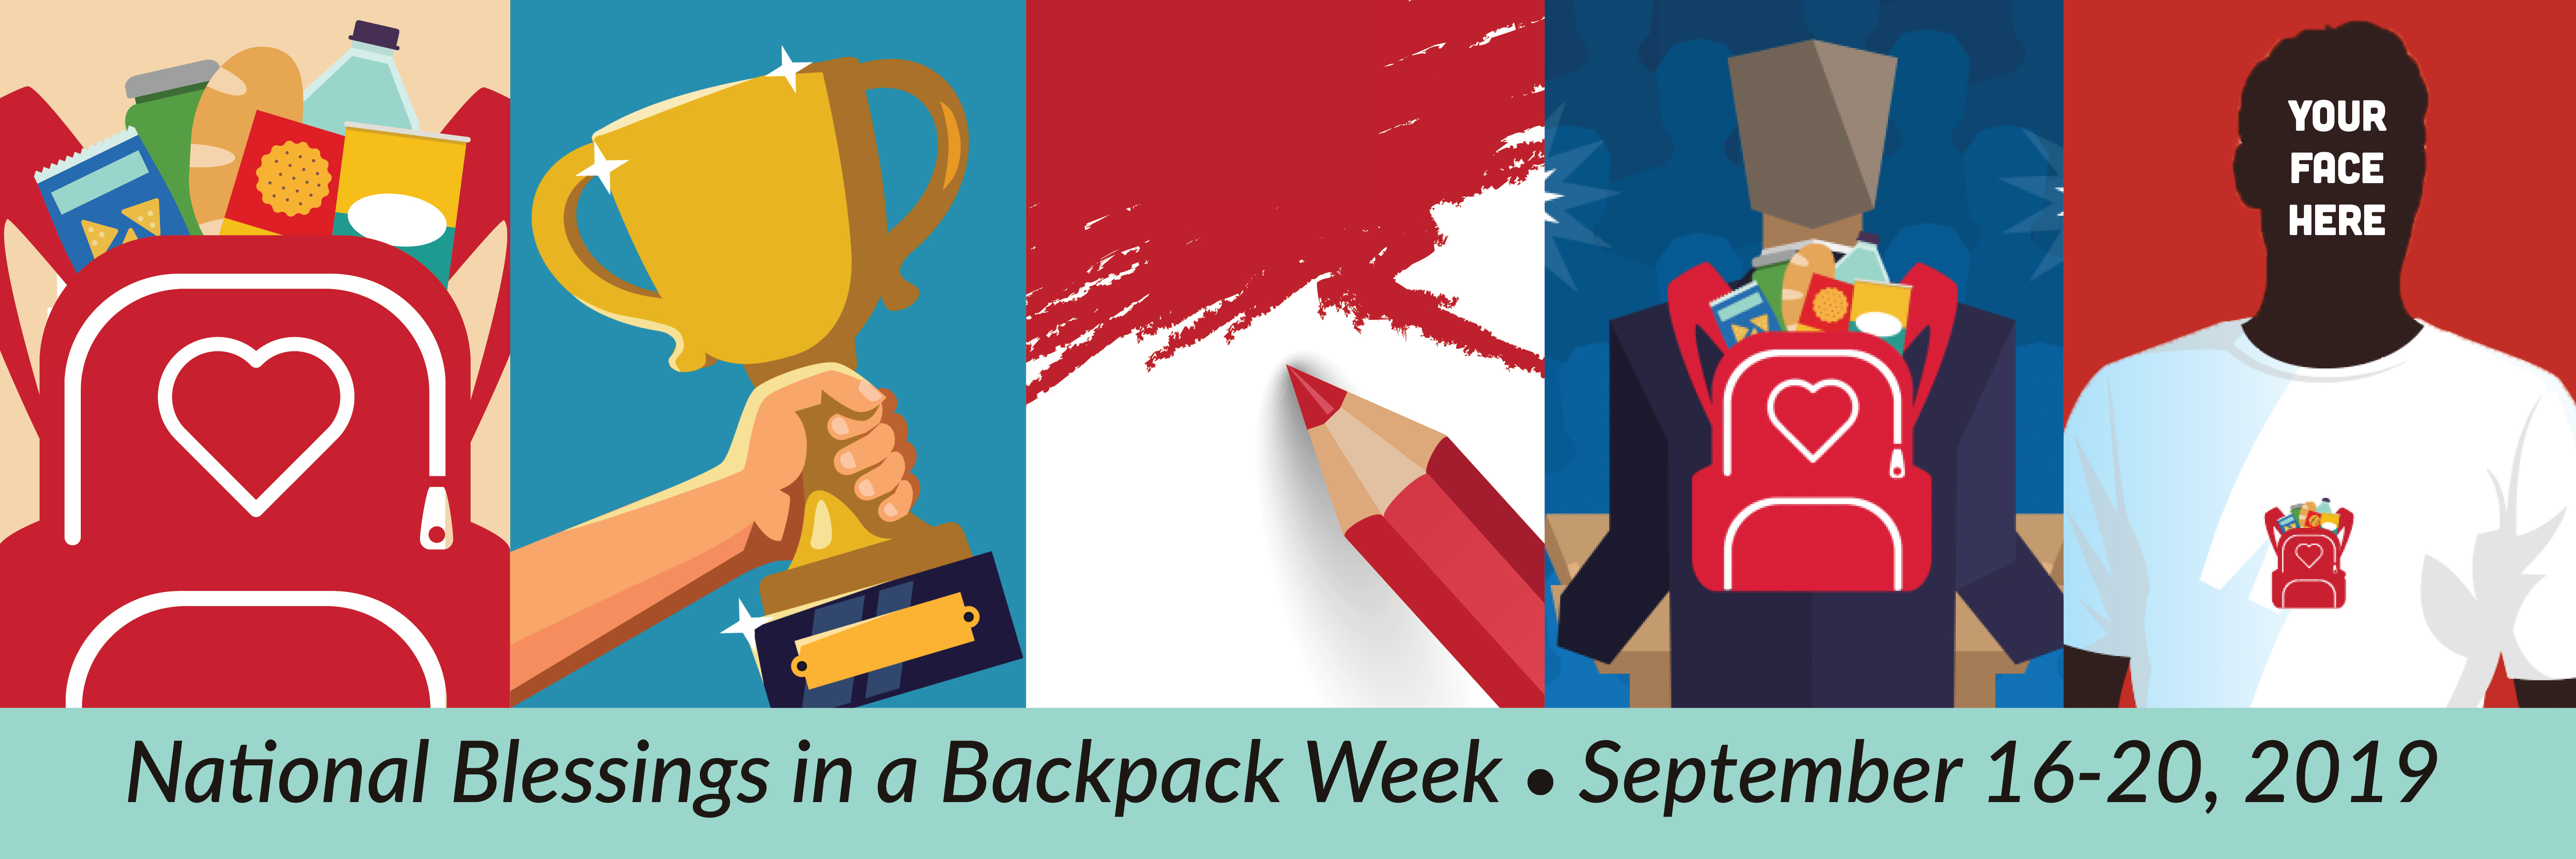 National Blessings in a Backpack Week